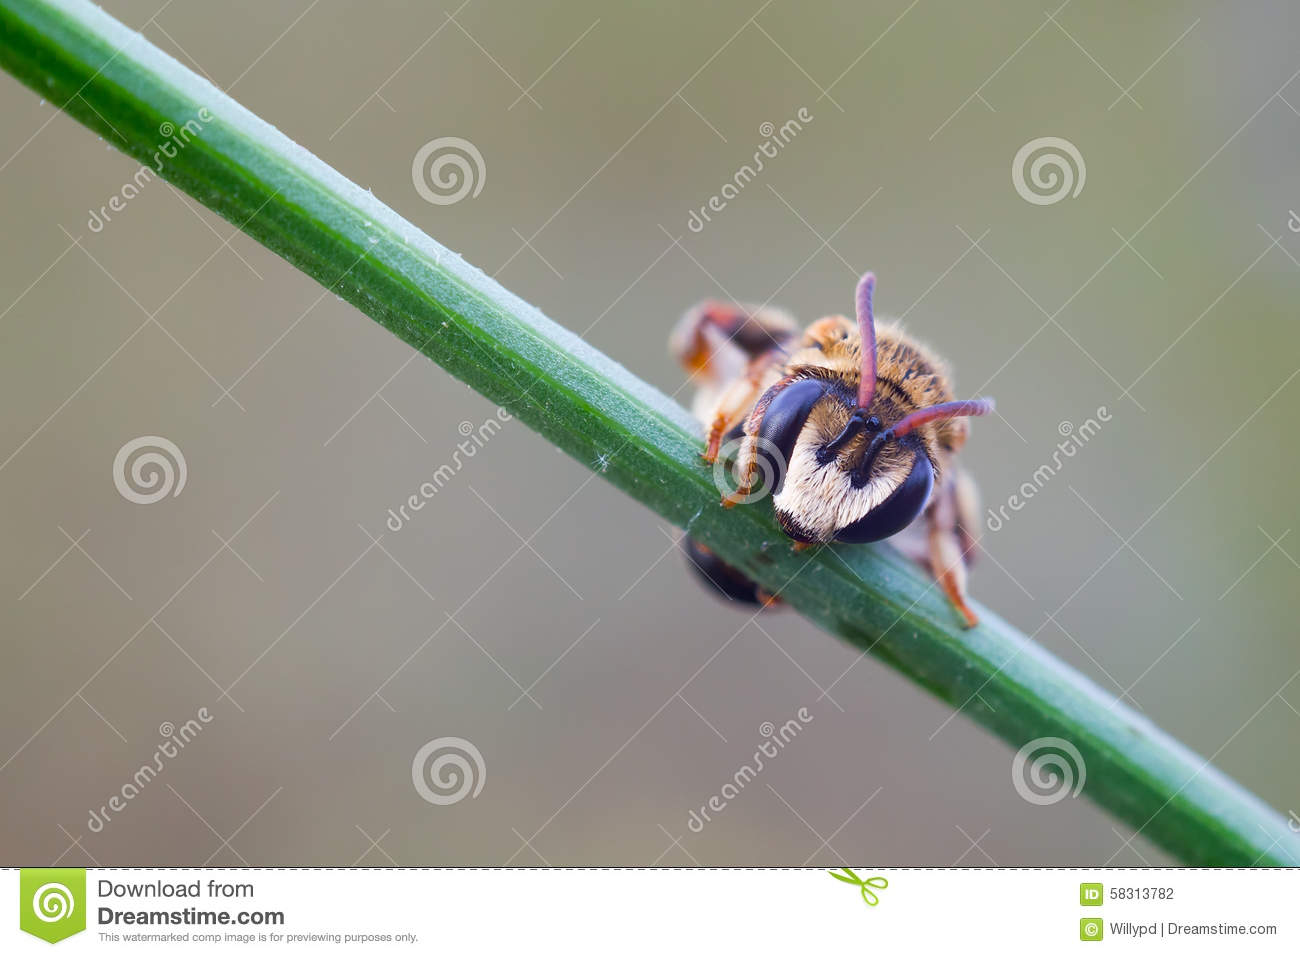 Order a paper wasp